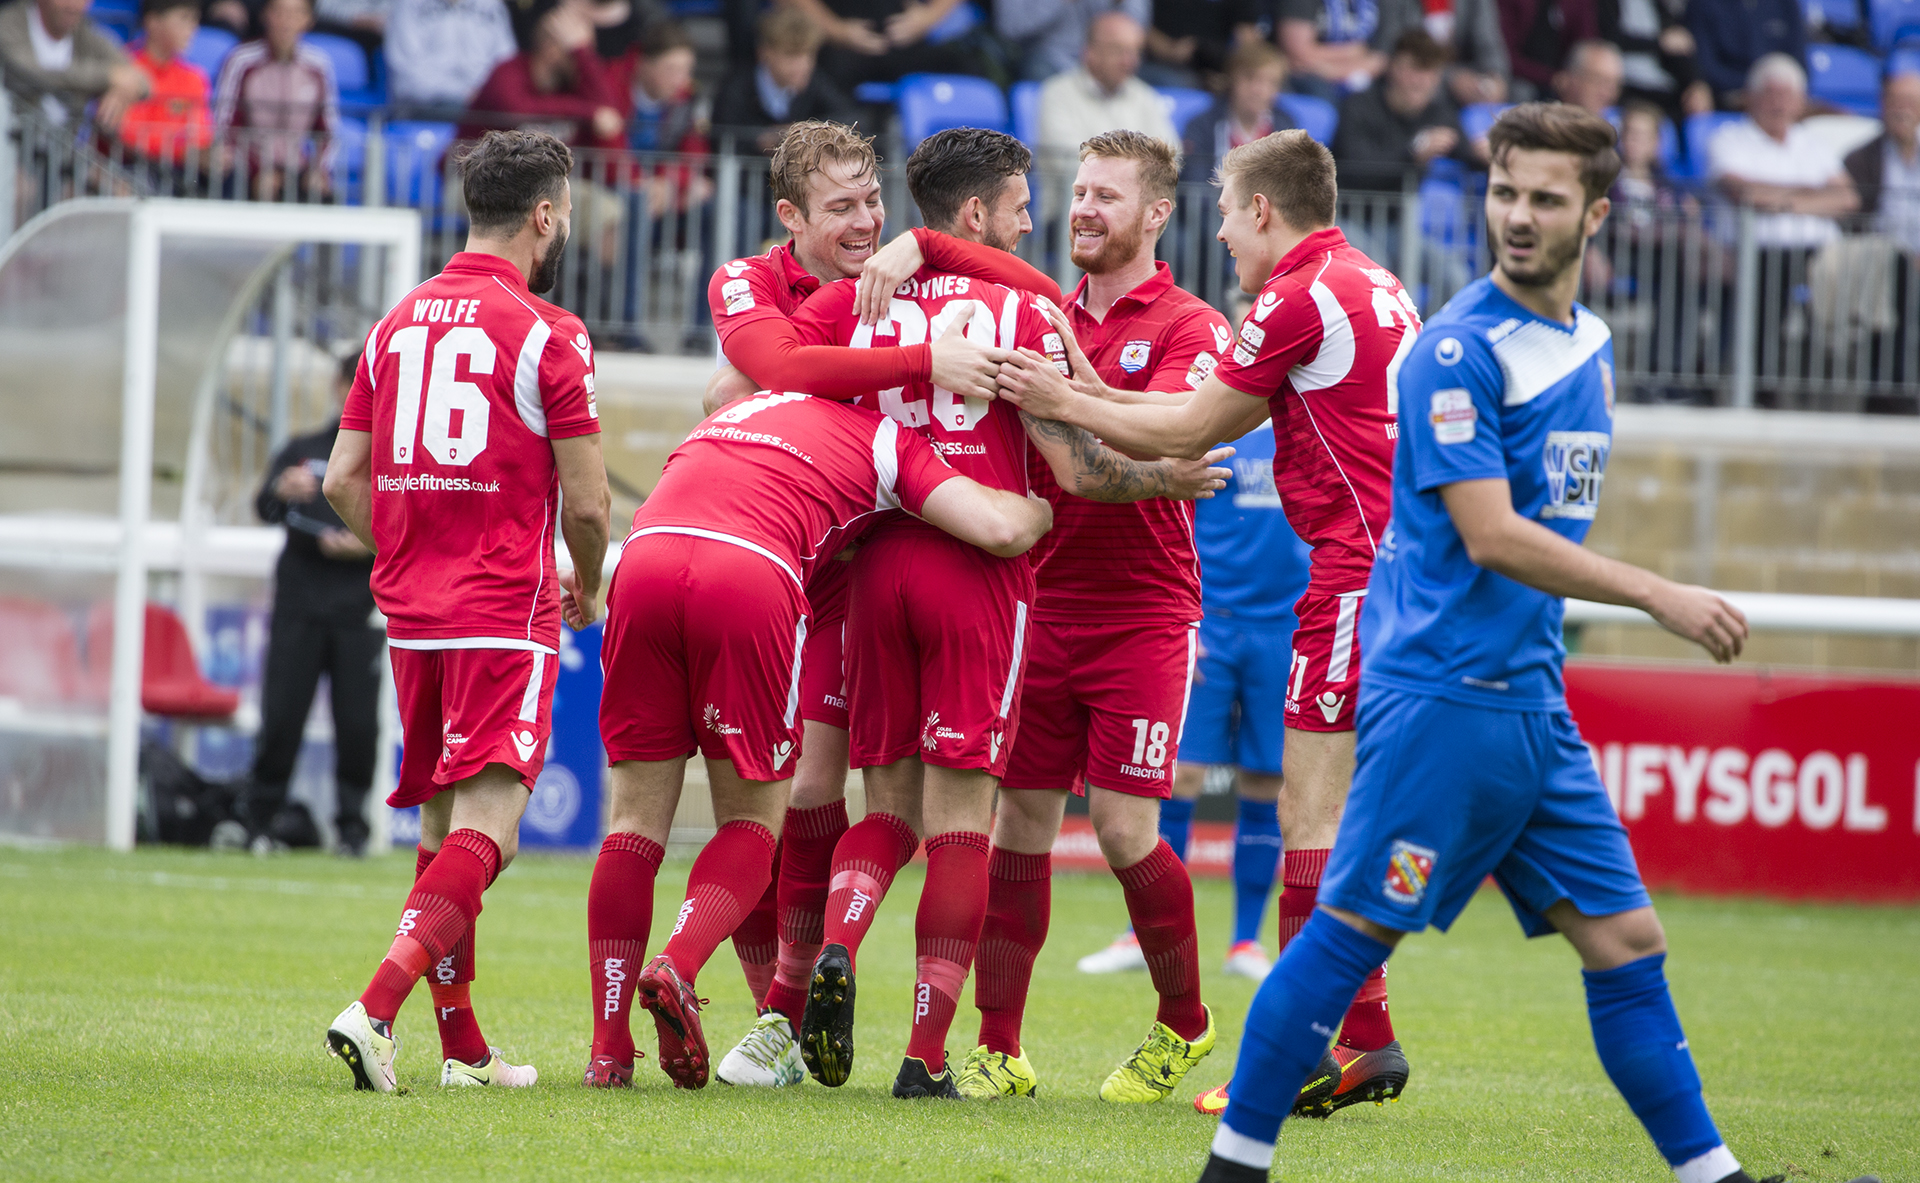 The Nomads' celebrate Wes Baynes' strike at Bangor City - © NCM Media